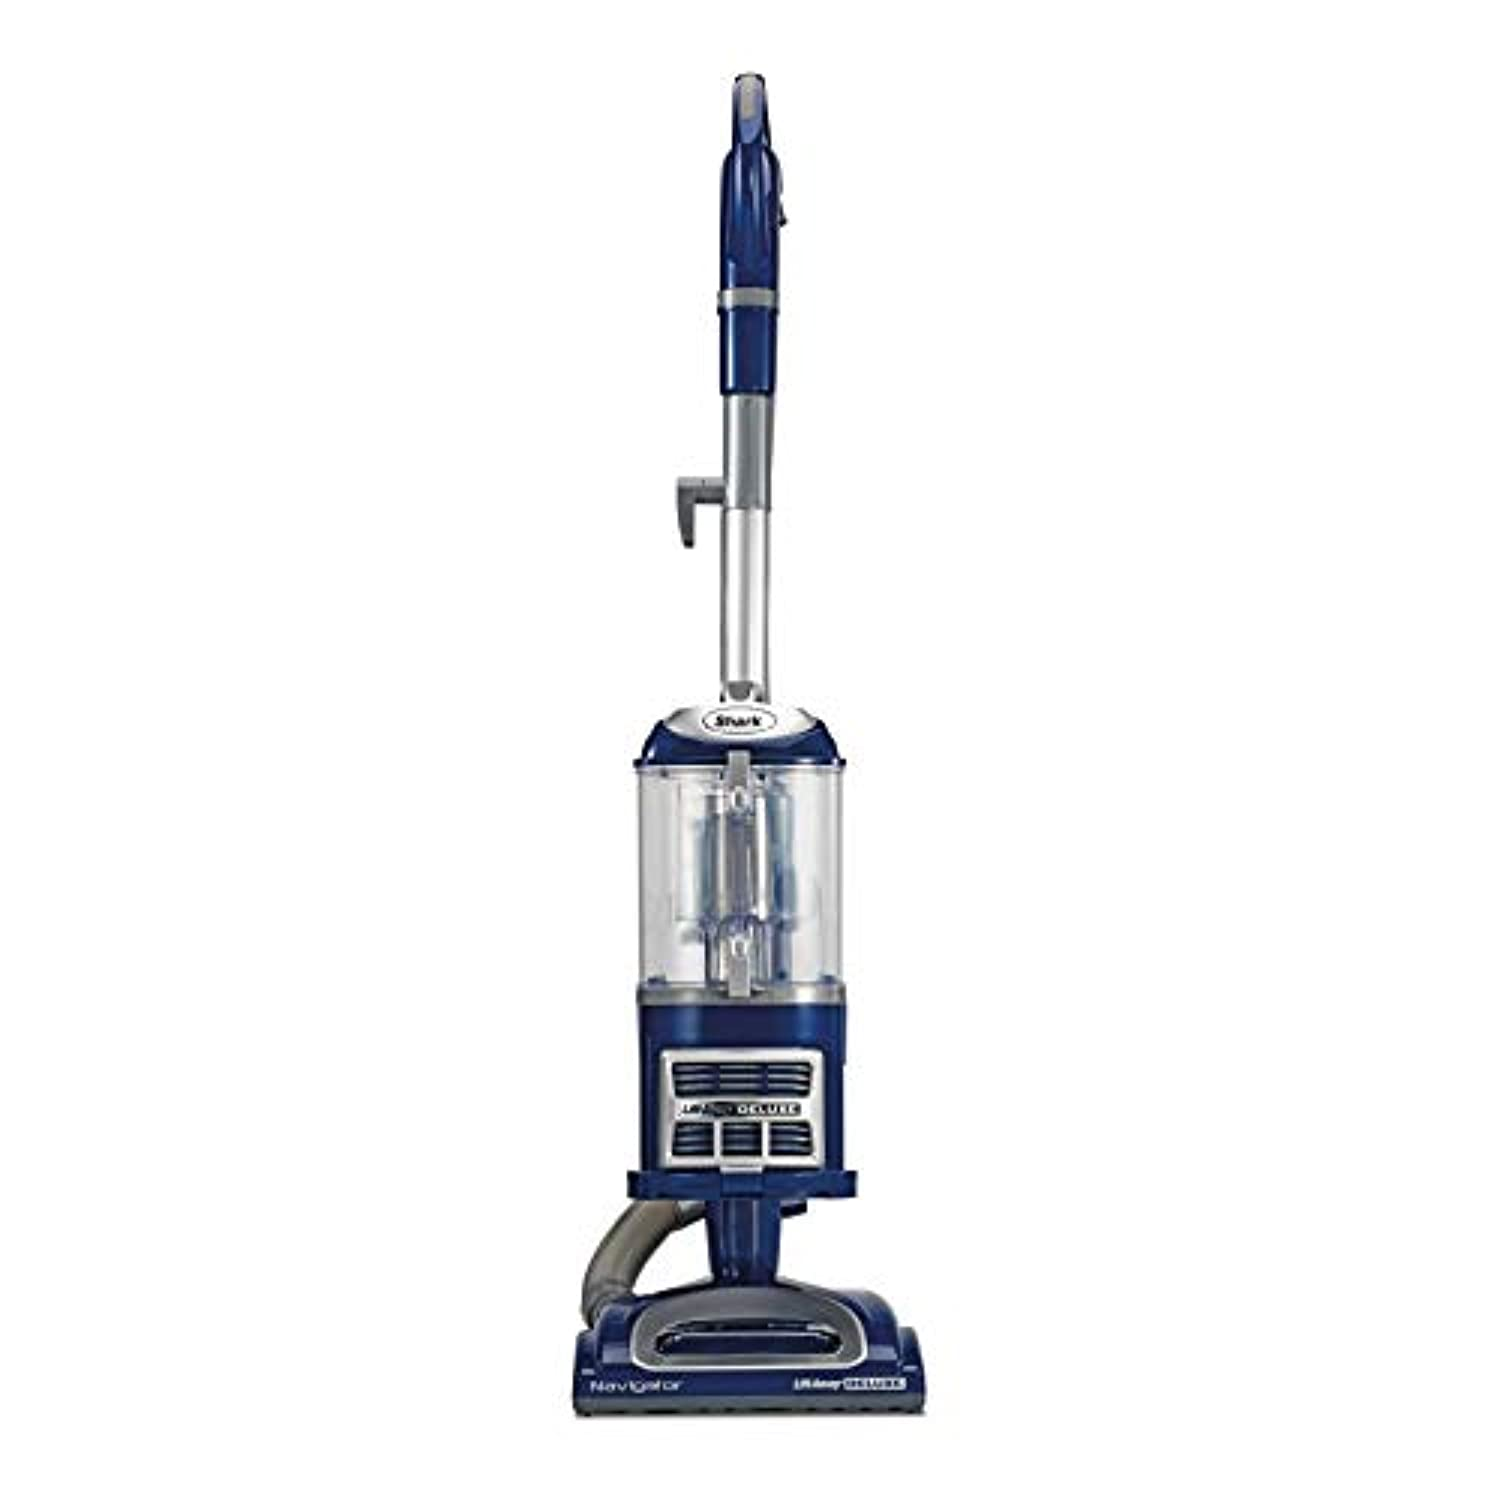 Classier: Buy Shark Shark Navigator Lift-Away Deluxe NV360 Upright Vacuum, Blue